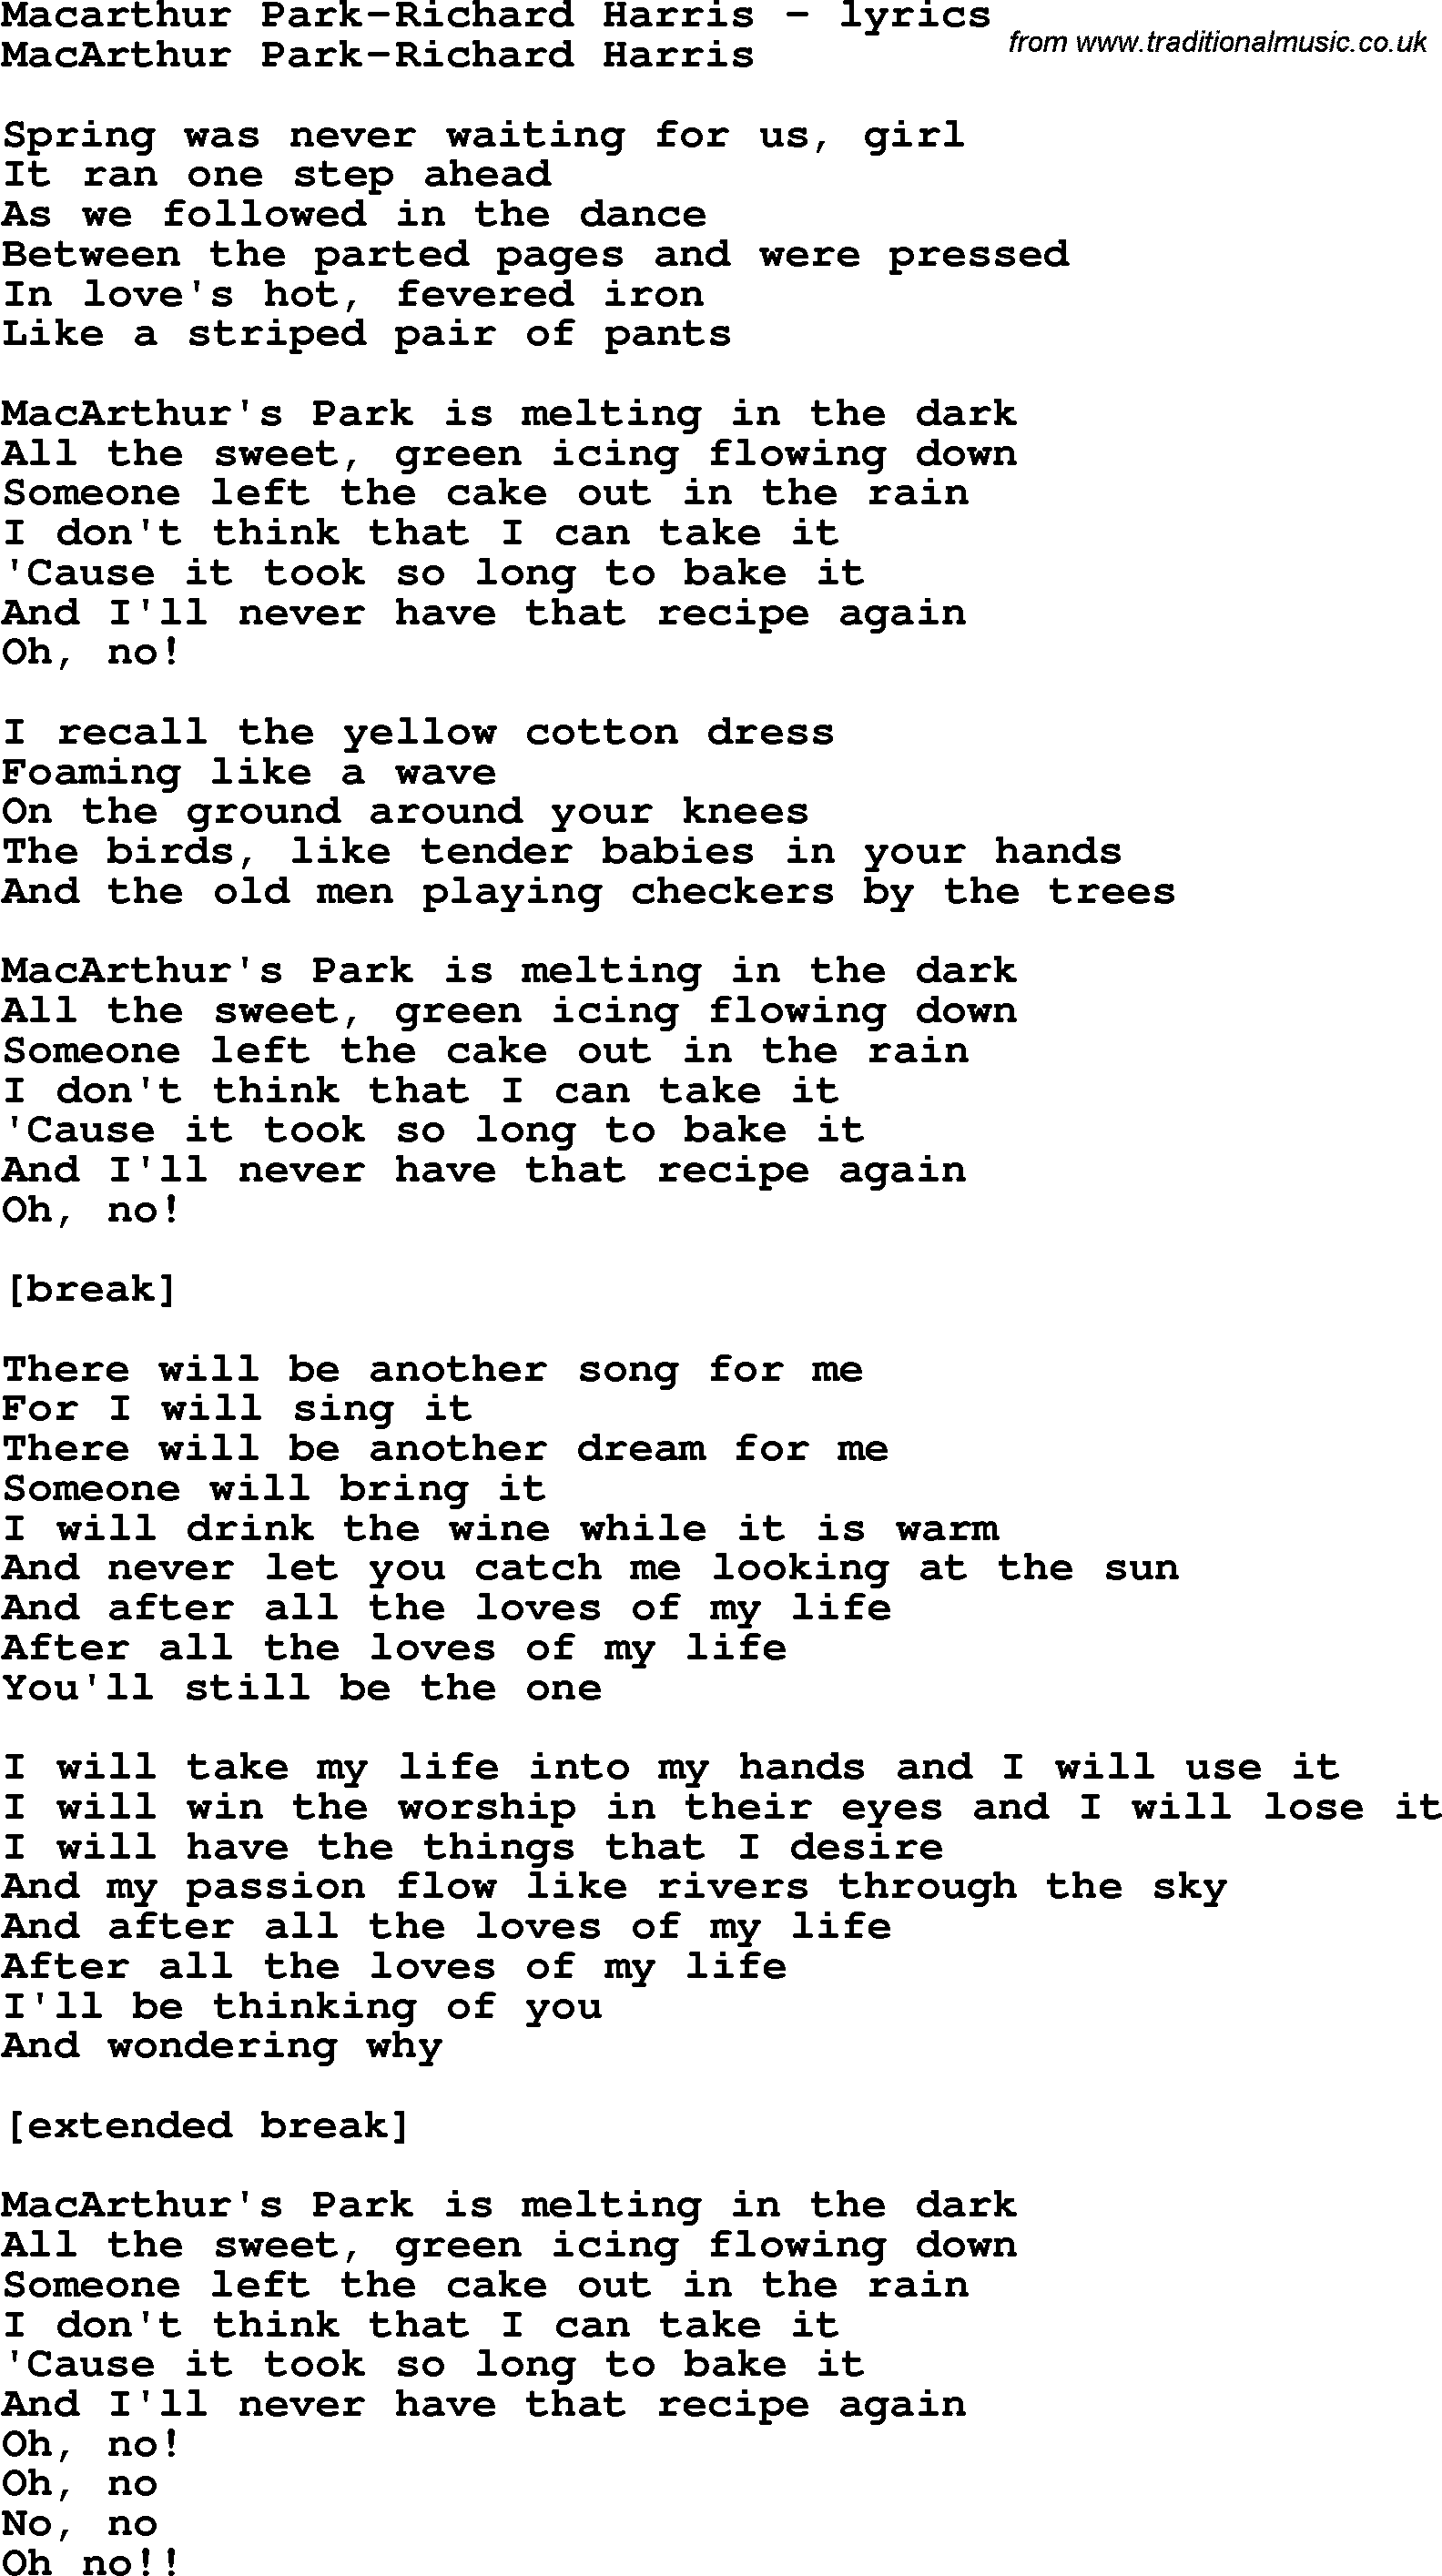 Love Song Lyrics for:Macarthur Park-Richard Harris